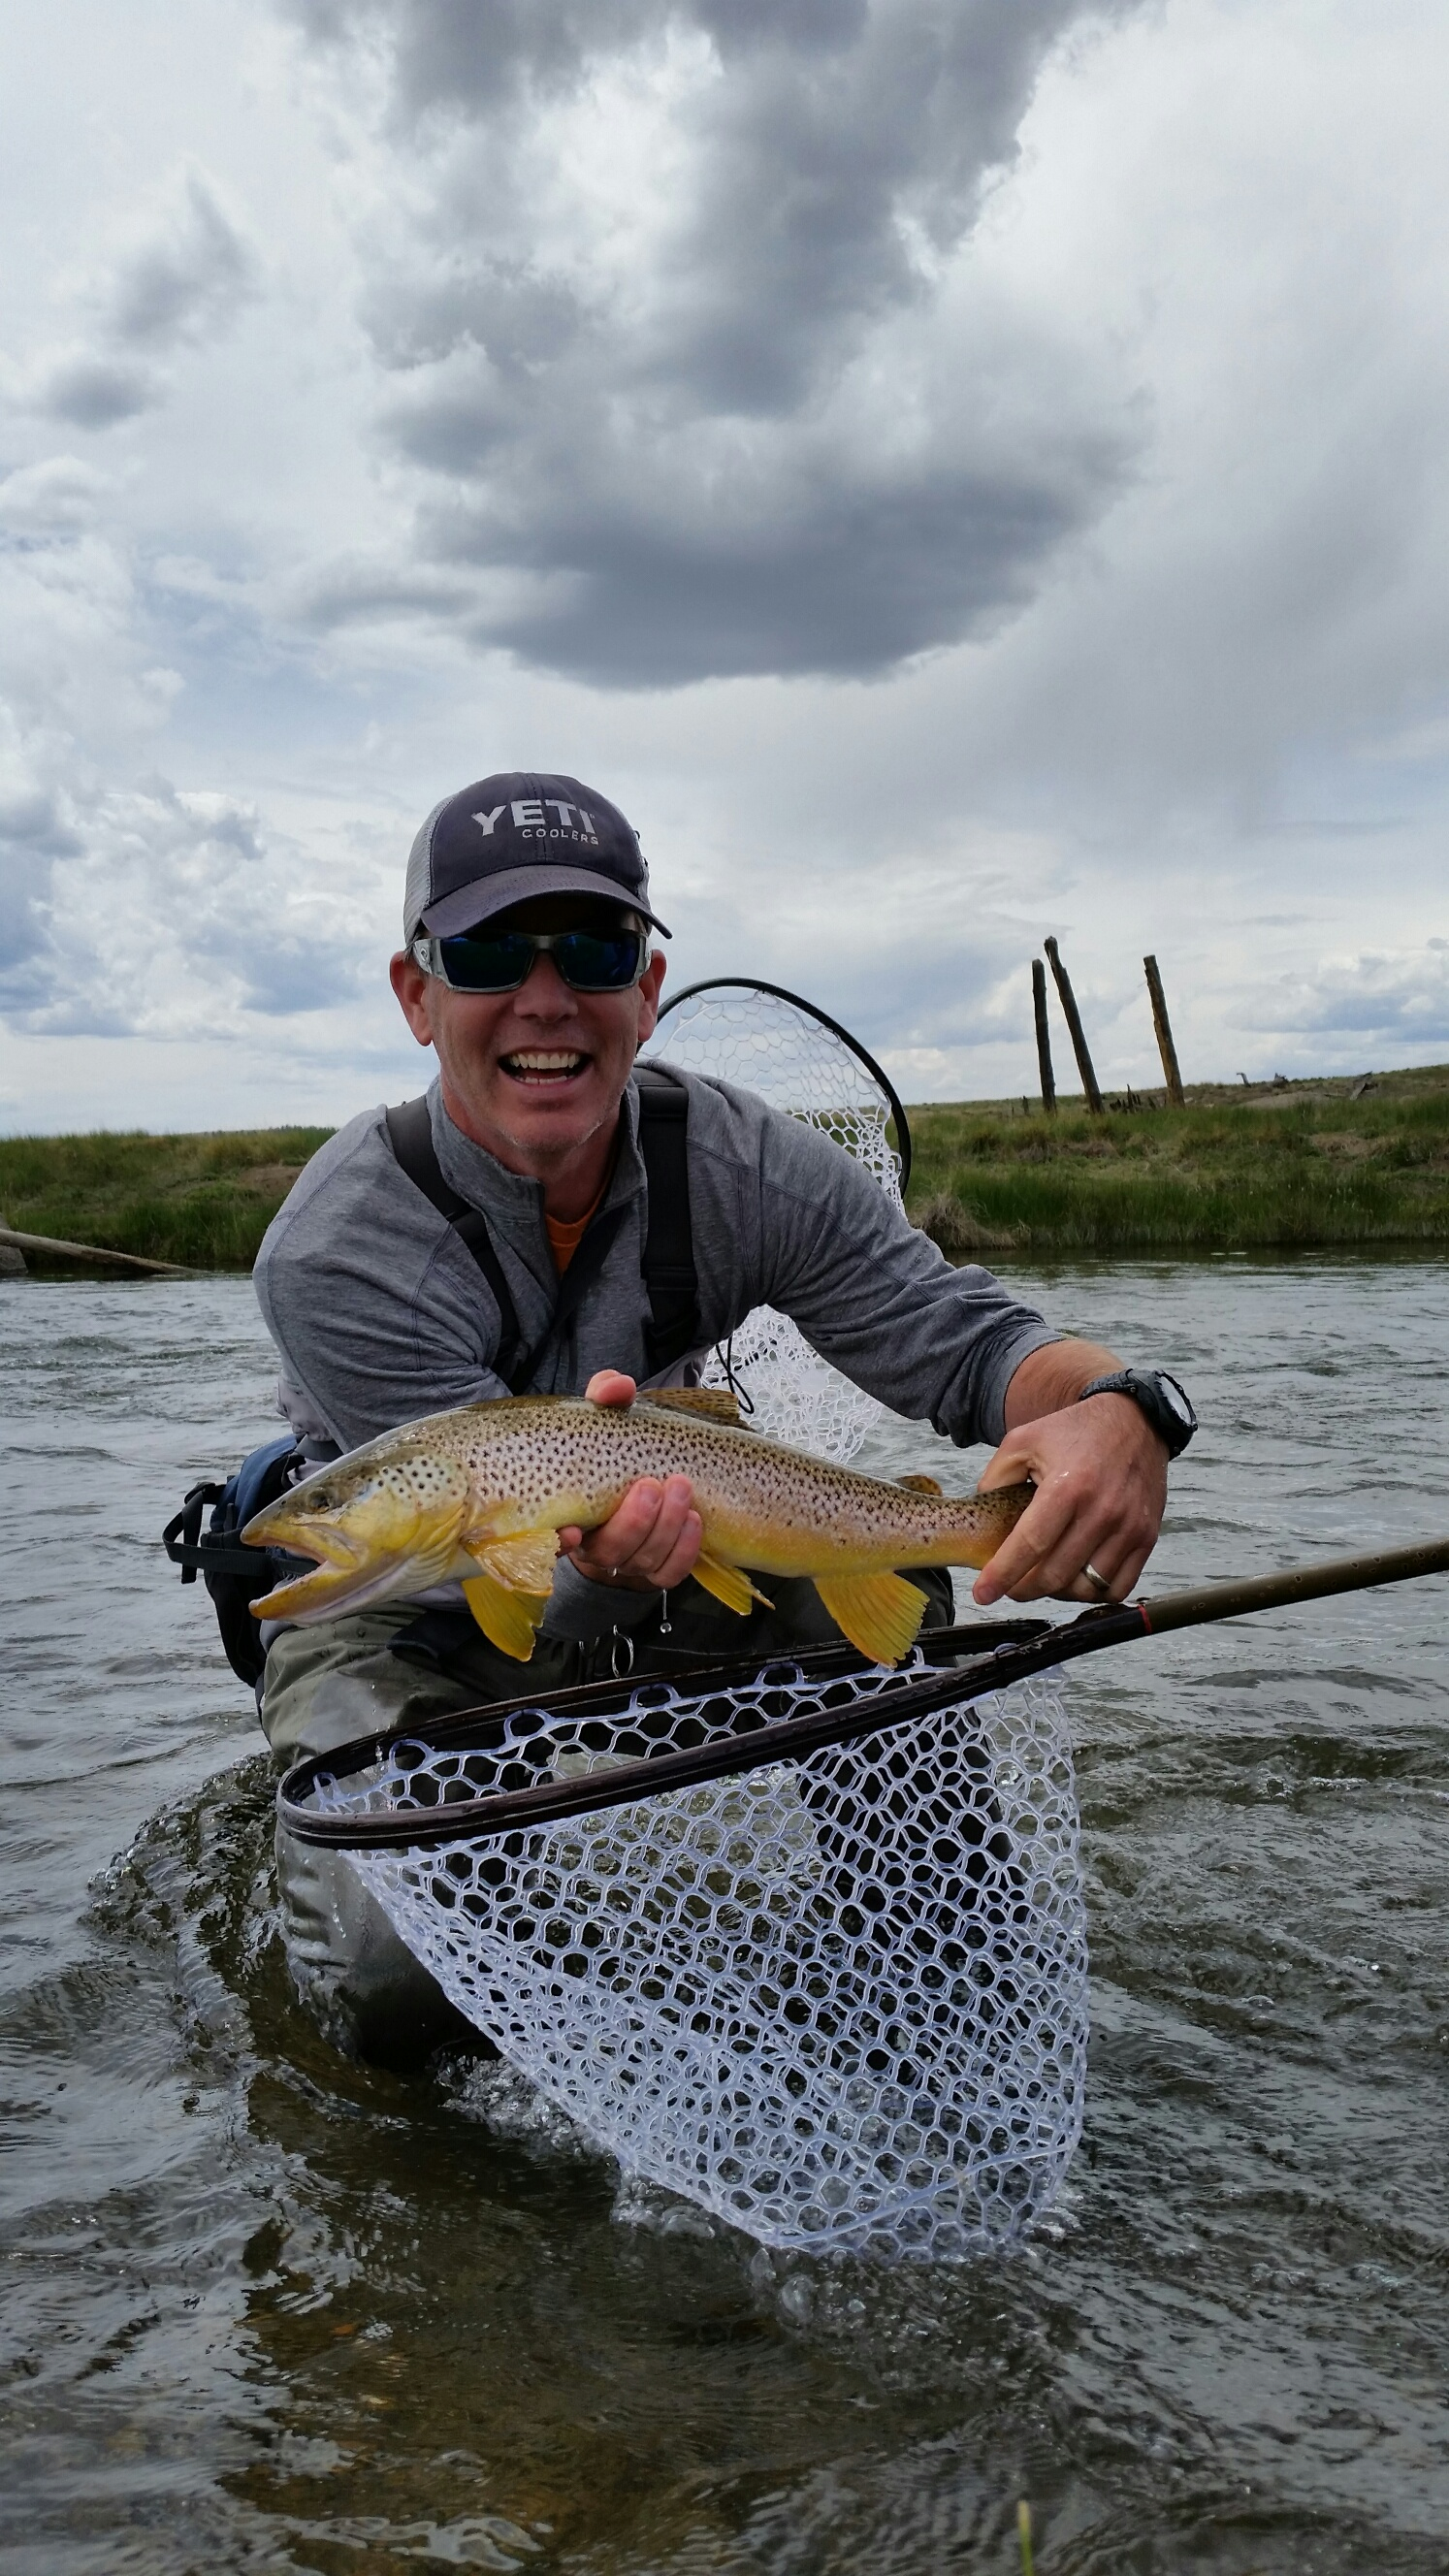 Keith Reis wearing a Mountainsmith Tour TLS on the Dream stream holding a brown trout